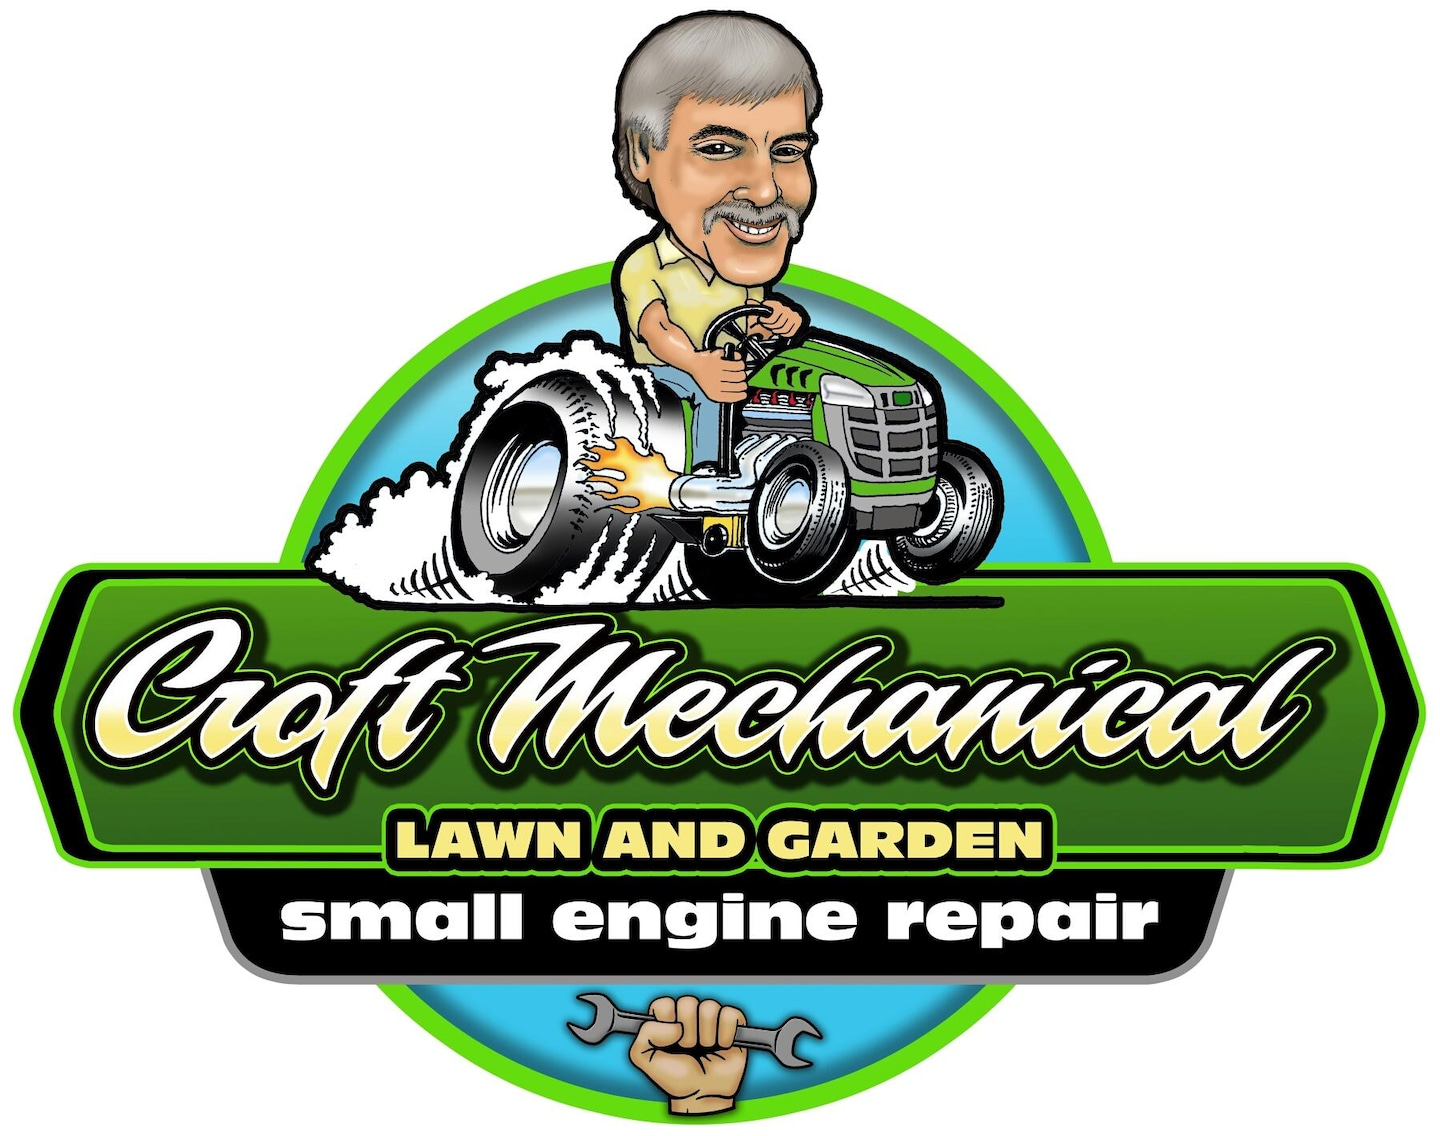 Croft Mechanical Inc.